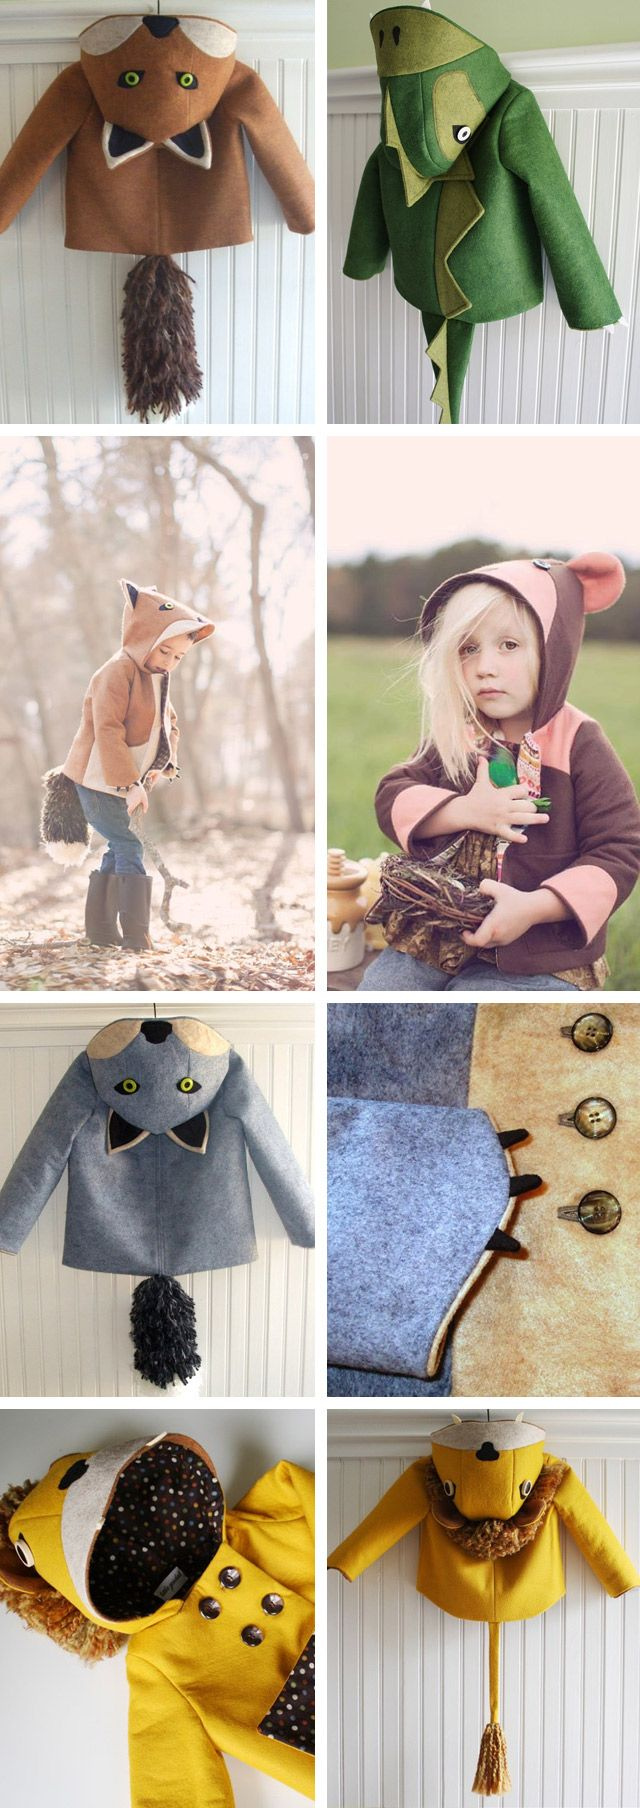 Wild coats from Little Goodall. The only reason I want a child is to dress them in these!